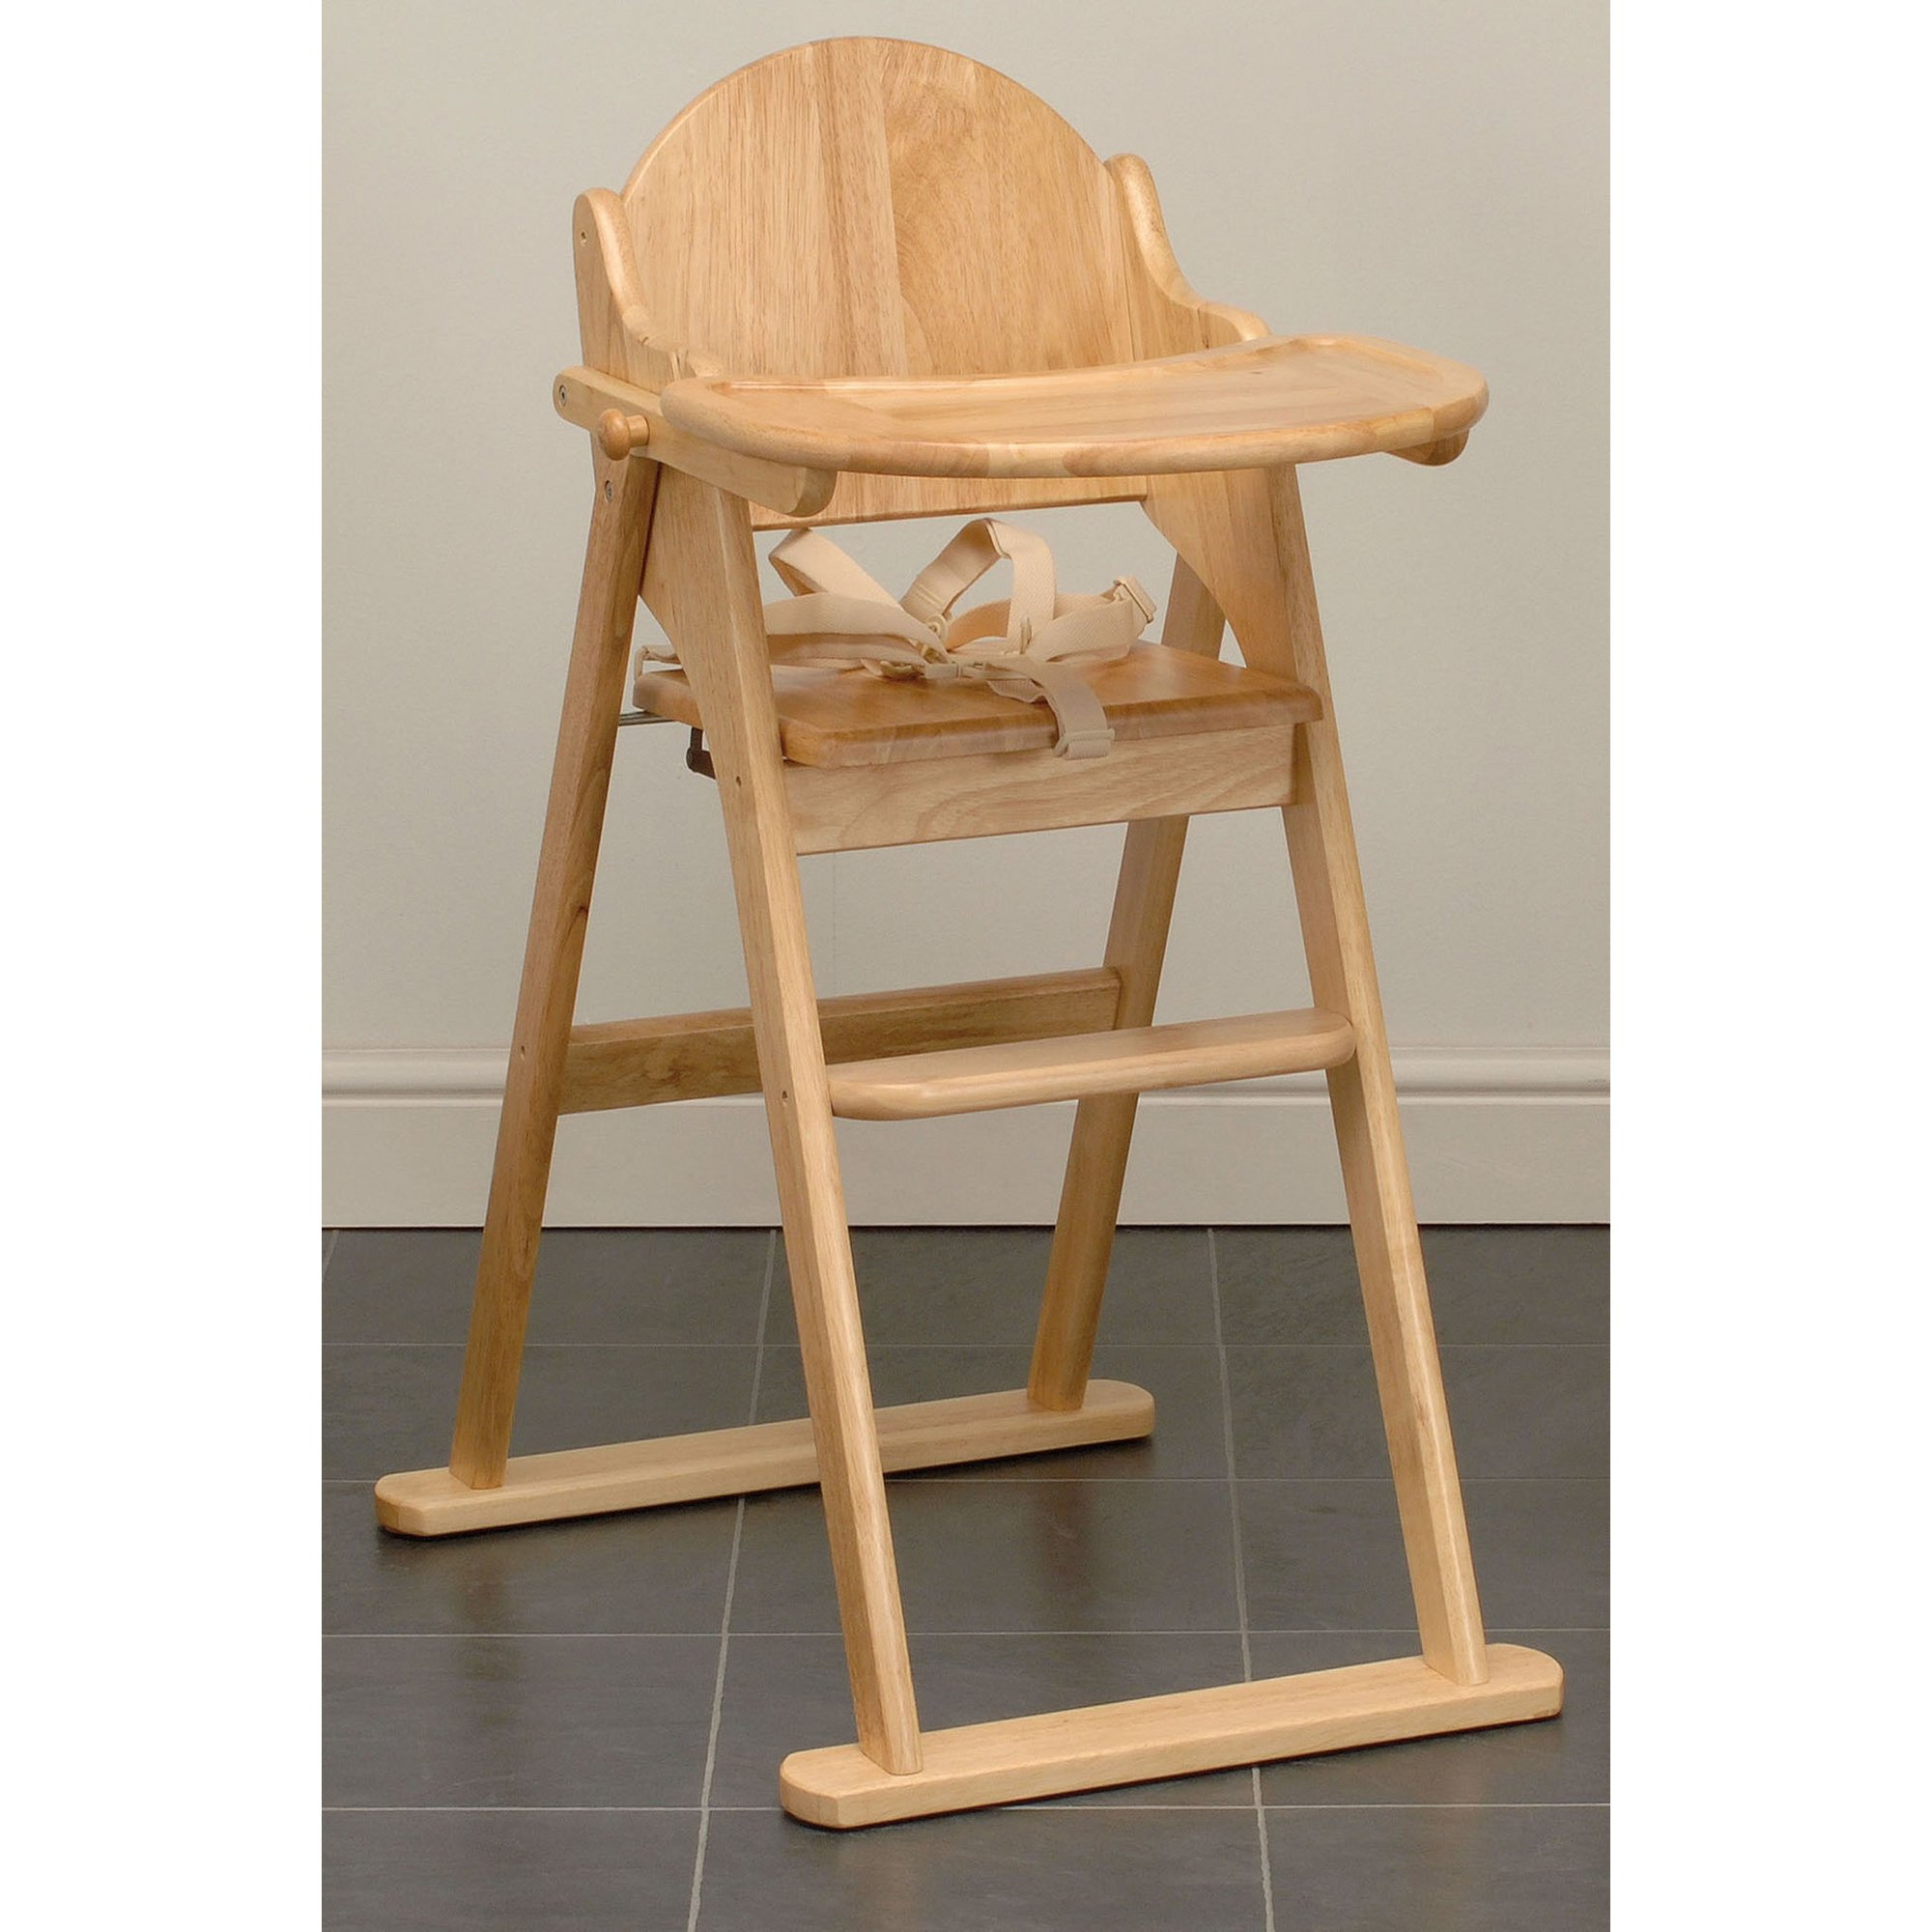 Image of Folding Wooden Highchair